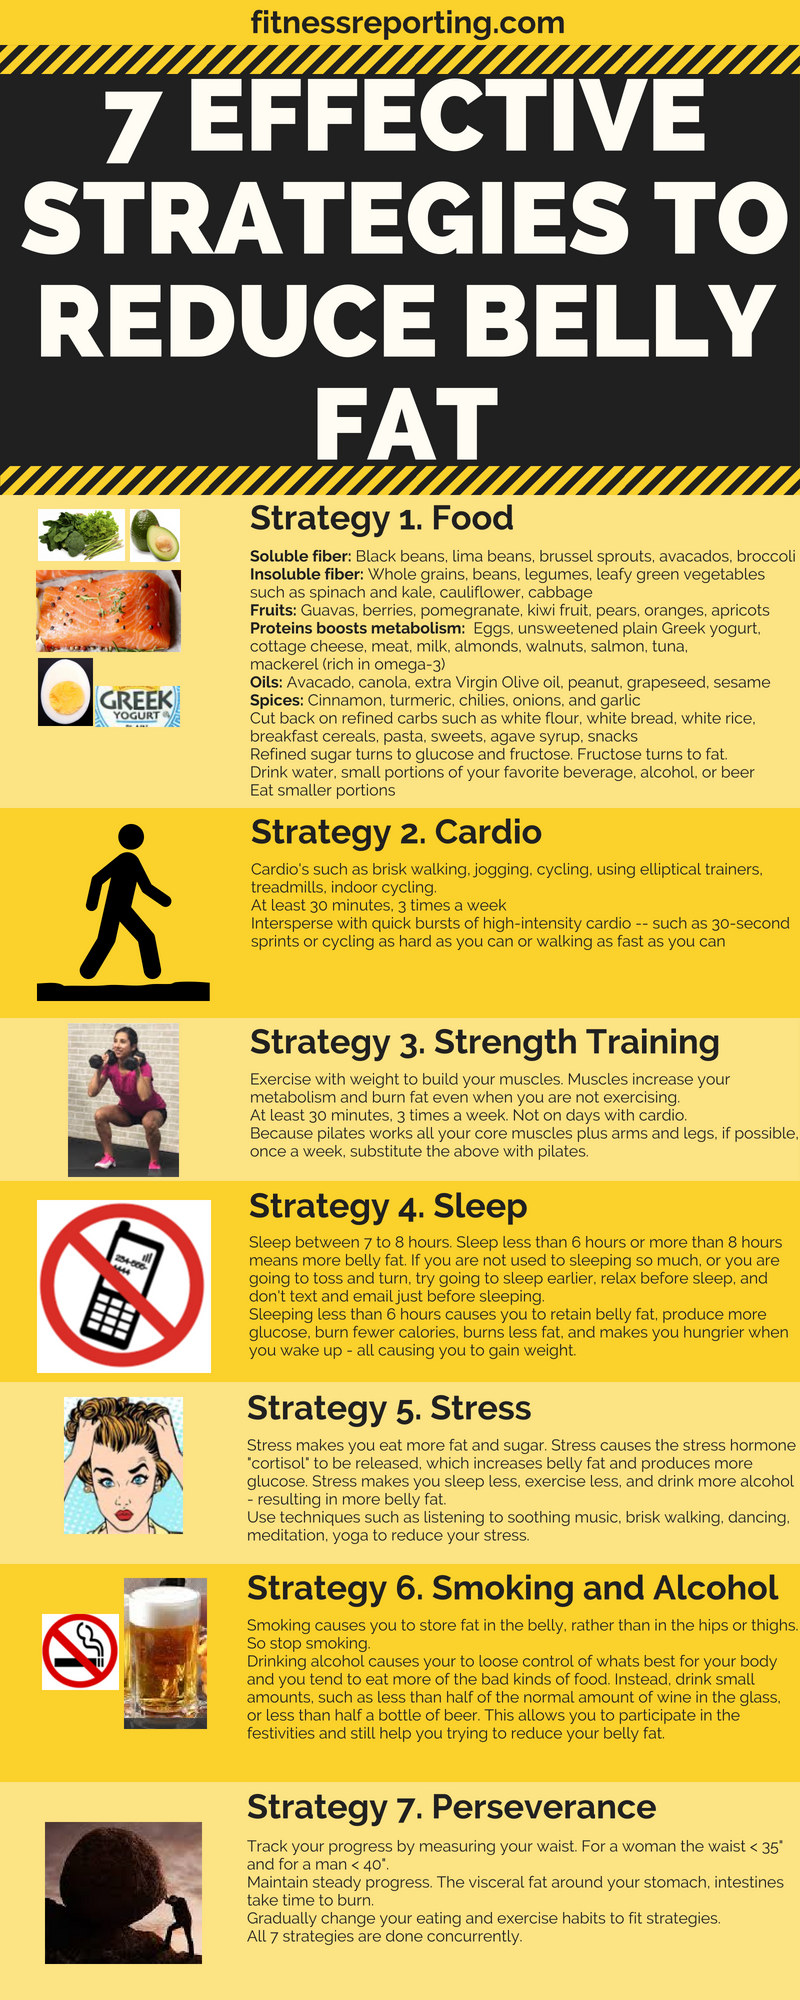 7-Effective-Strategies-to-Reduce-Belly-Fat-infographic-plaza